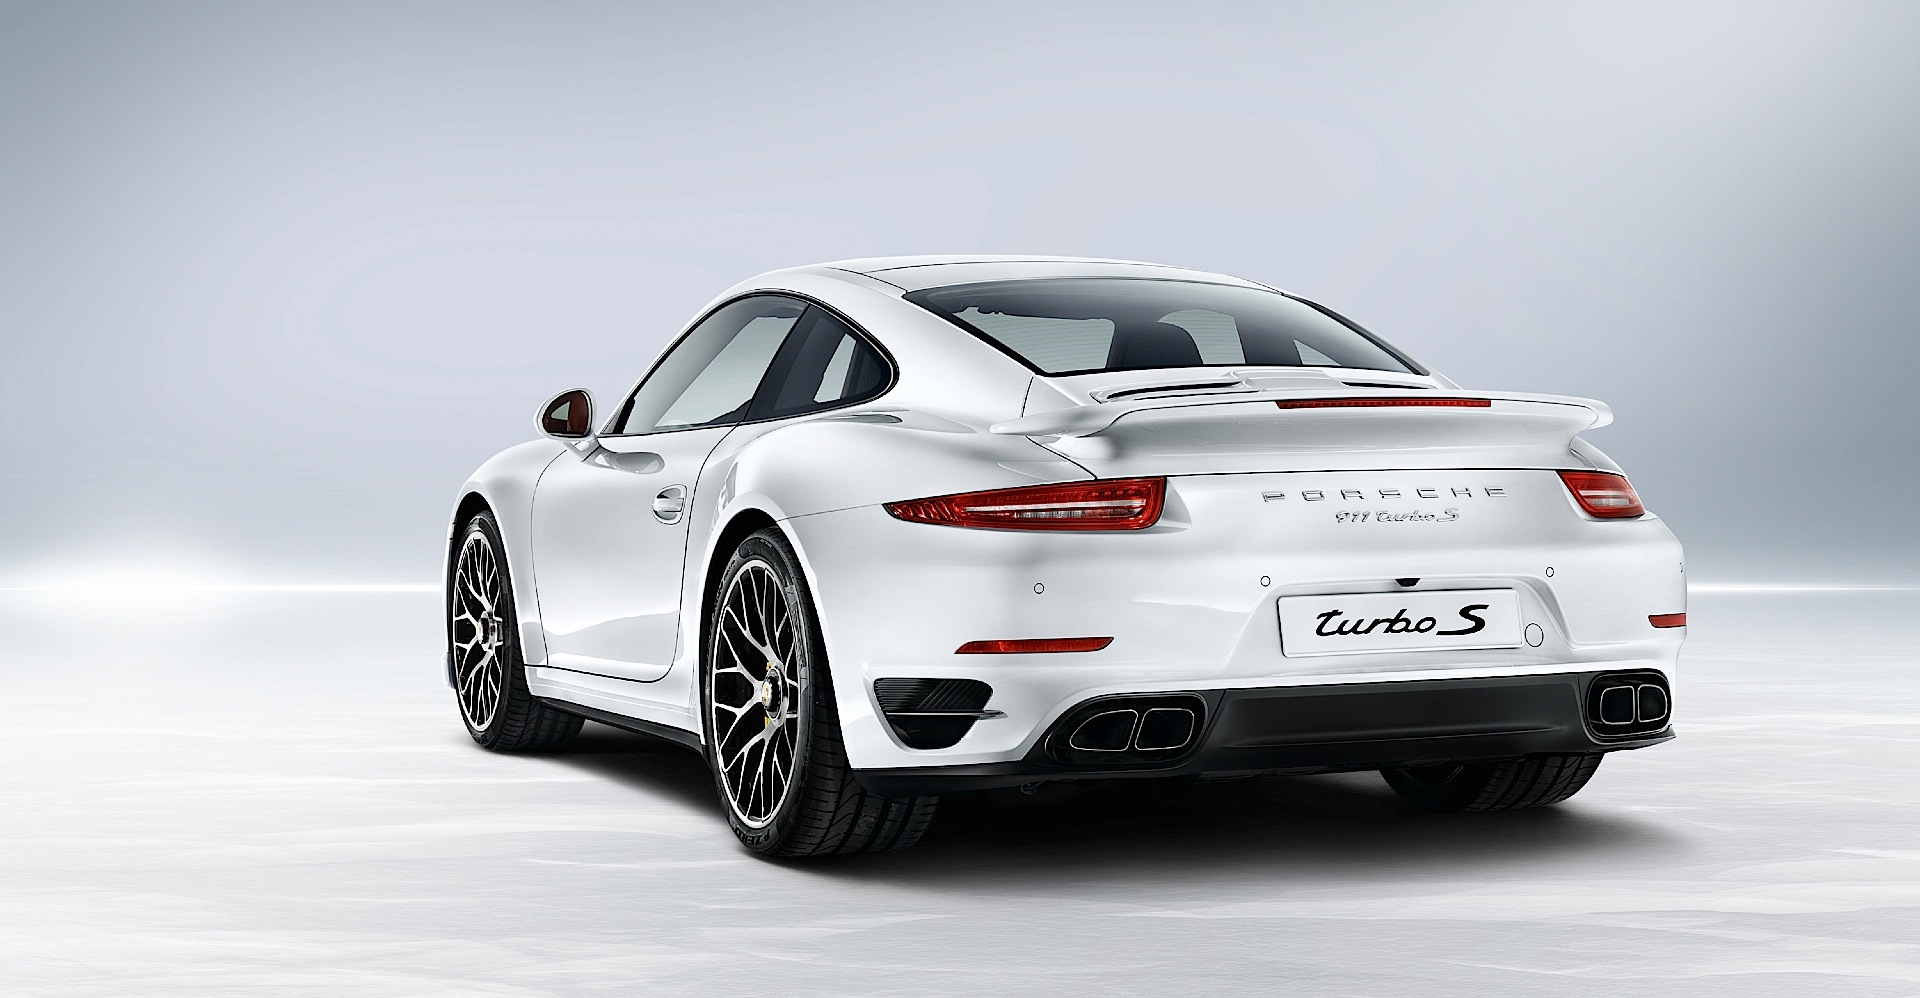 porsche 911 turbo s 991 specs 2013 2014 2015 2016. Black Bedroom Furniture Sets. Home Design Ideas